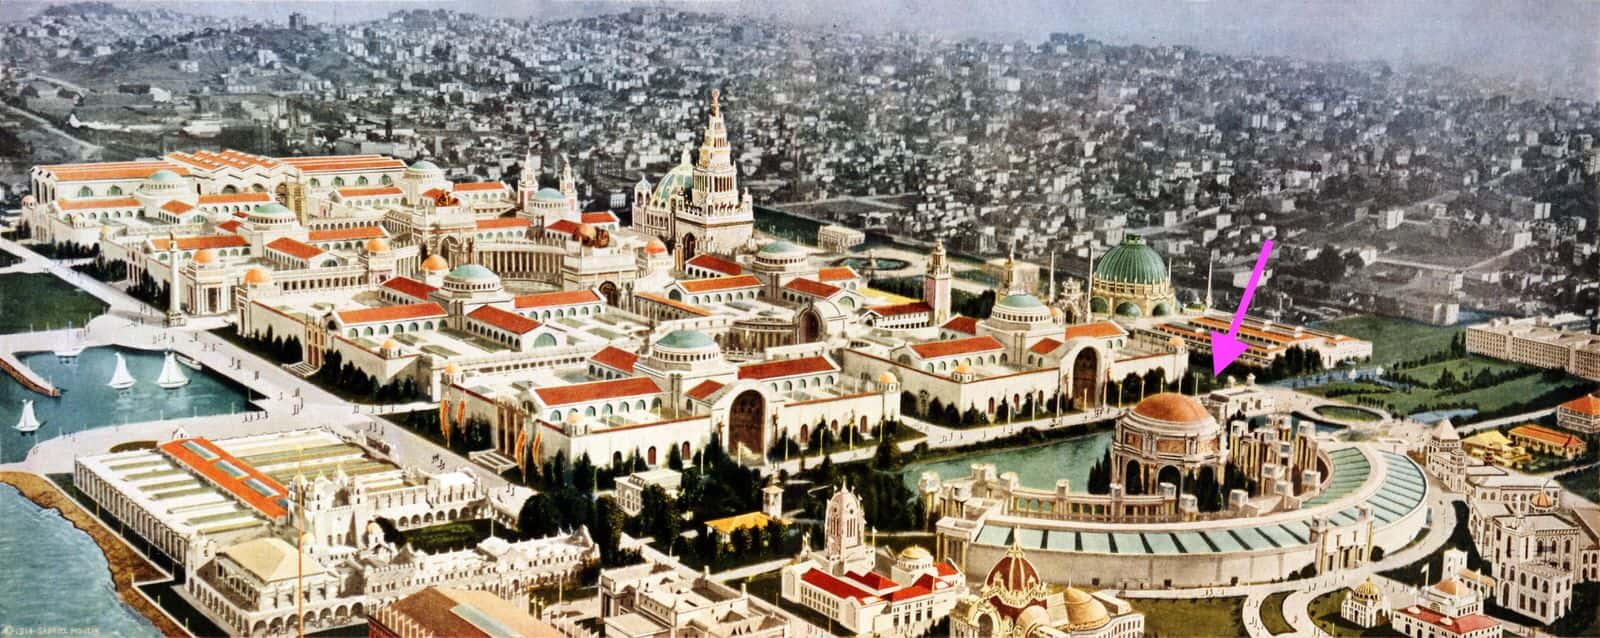 Panama Pacific Exposition of 1915 Panorama with Palace of Fine Arts highlighted